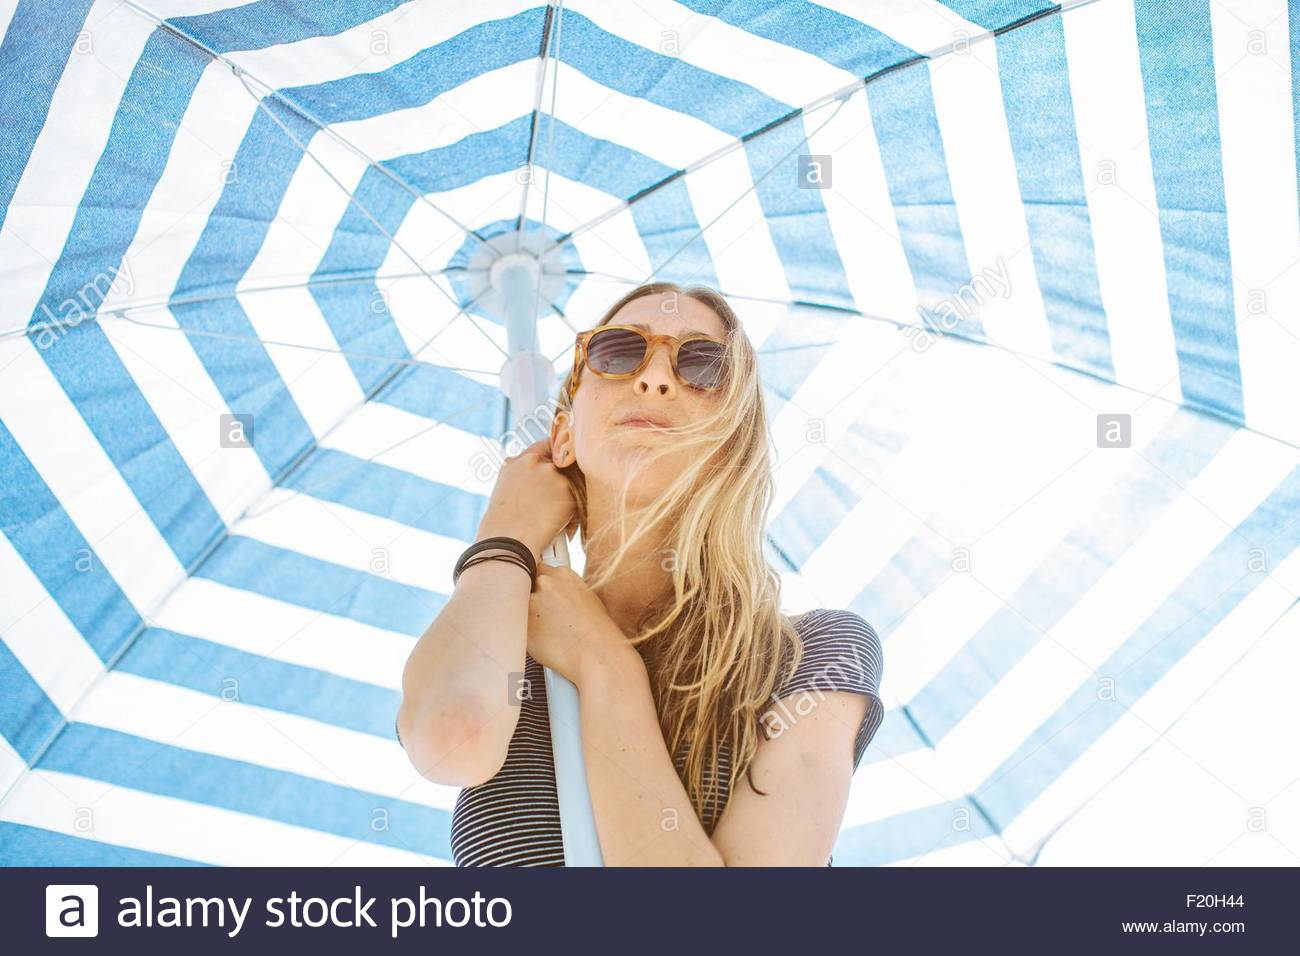 Low angle portrait of young woman holding up striped beach umbrella - Stock Image